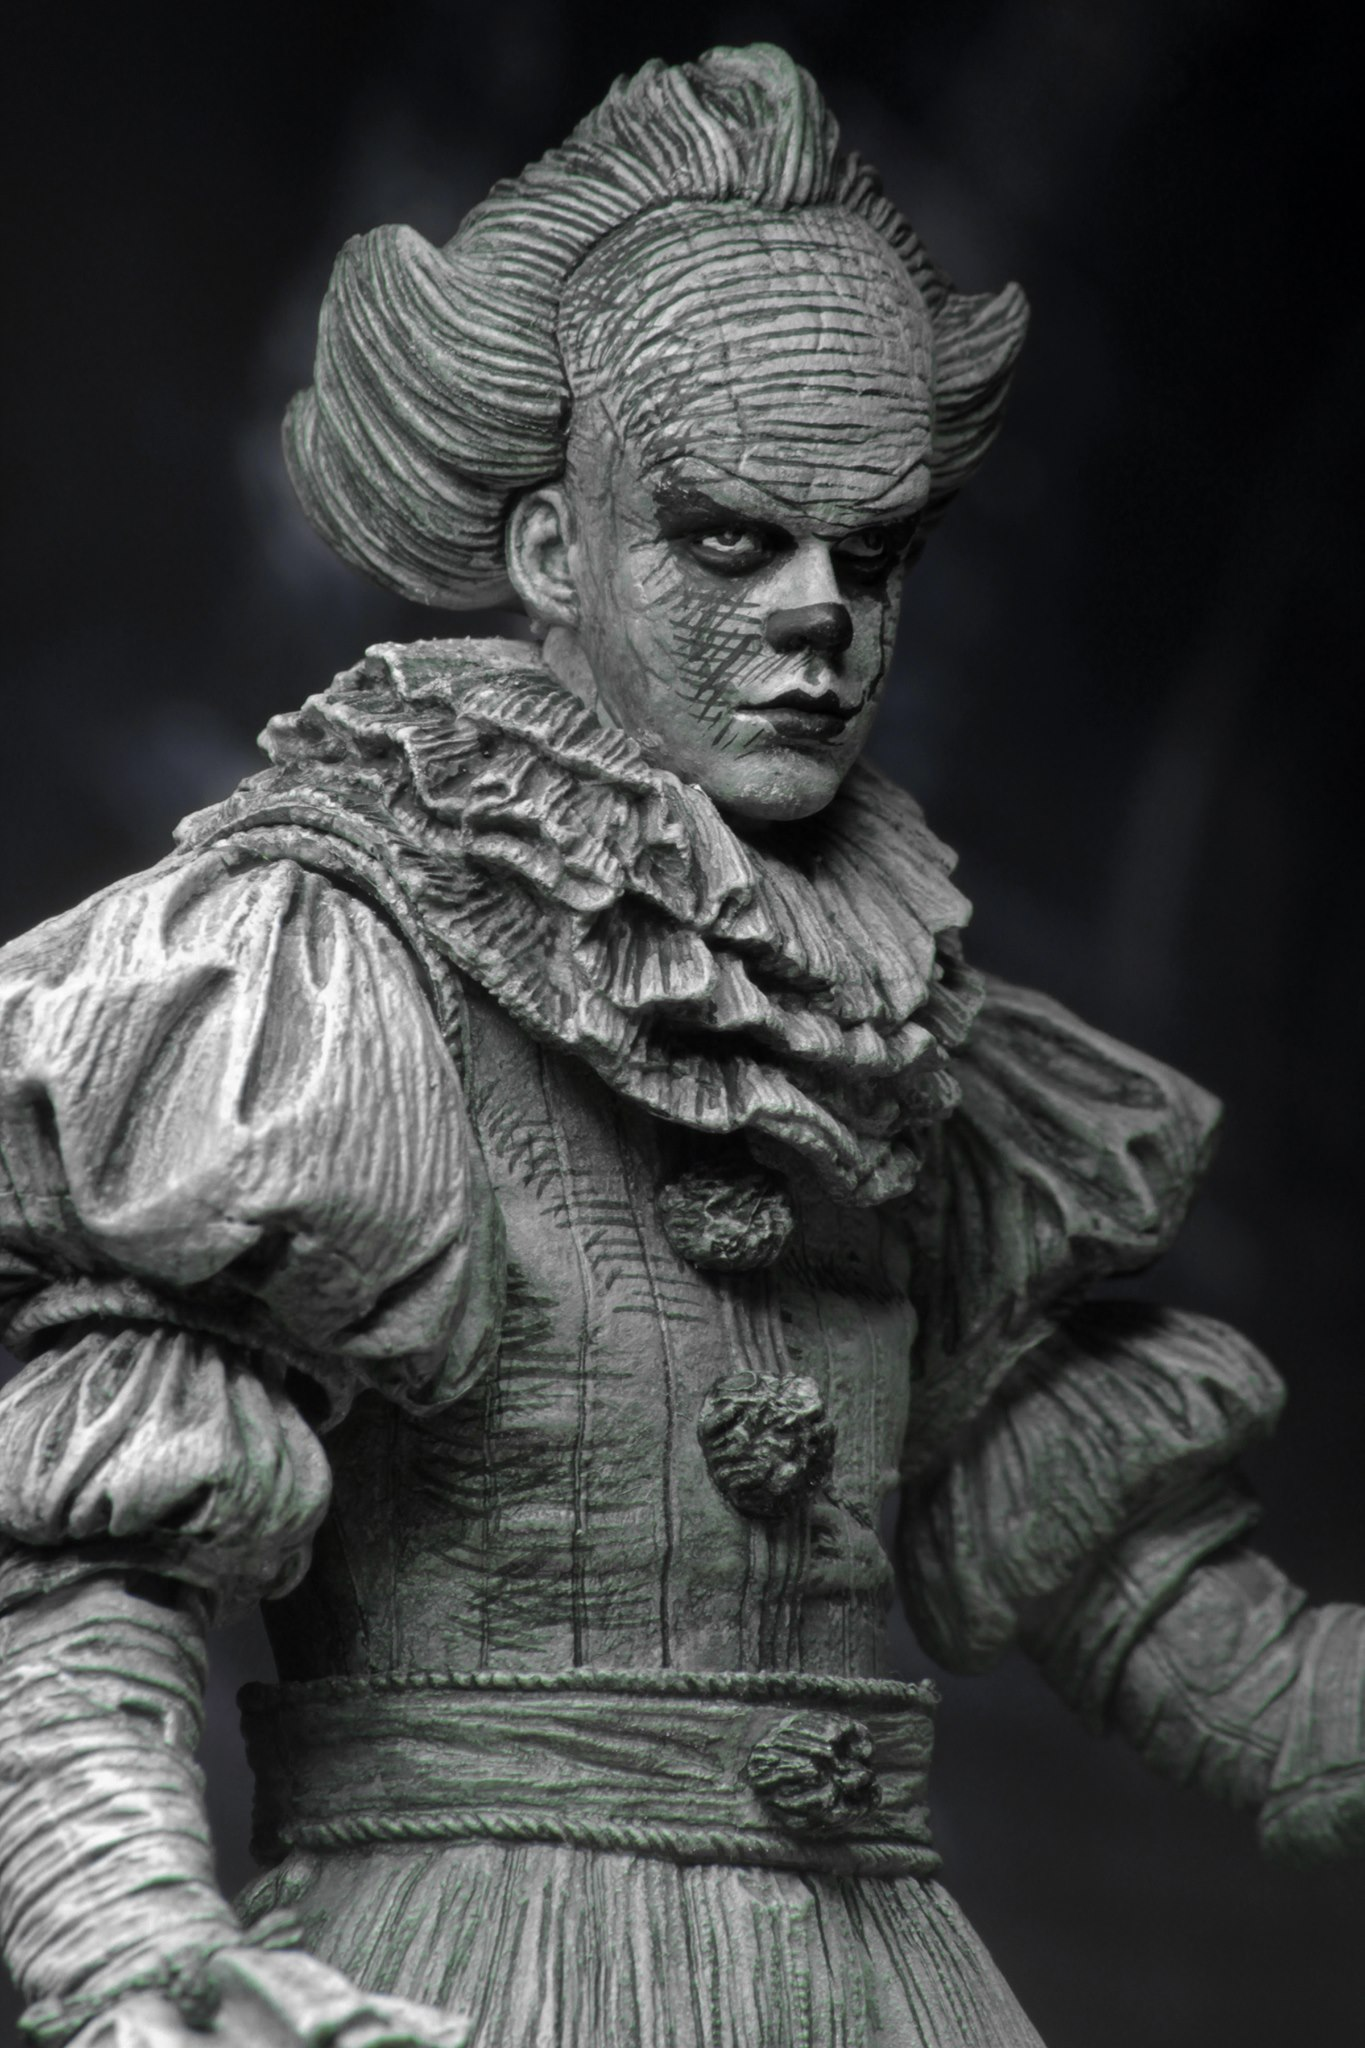 Neca Pennywise Sdcc 2019 14